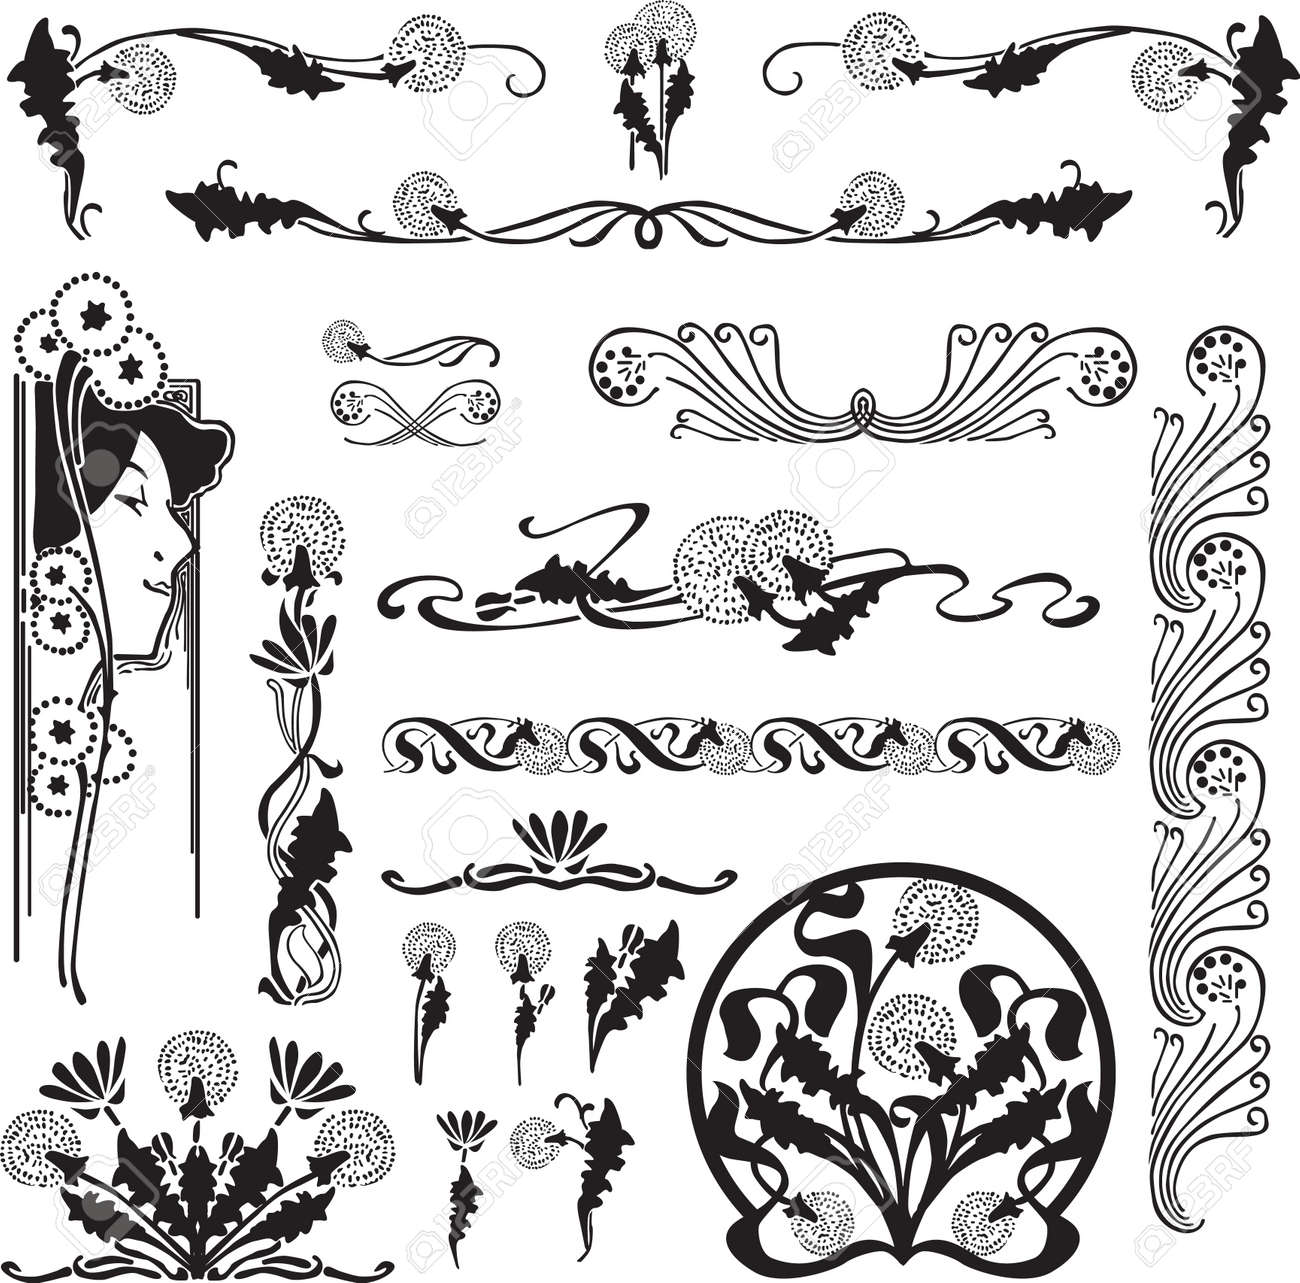 a set of patterns of art nouveau with dandelions for page design rh 123rf com art nouveau vector frame art nouveau victorian villa